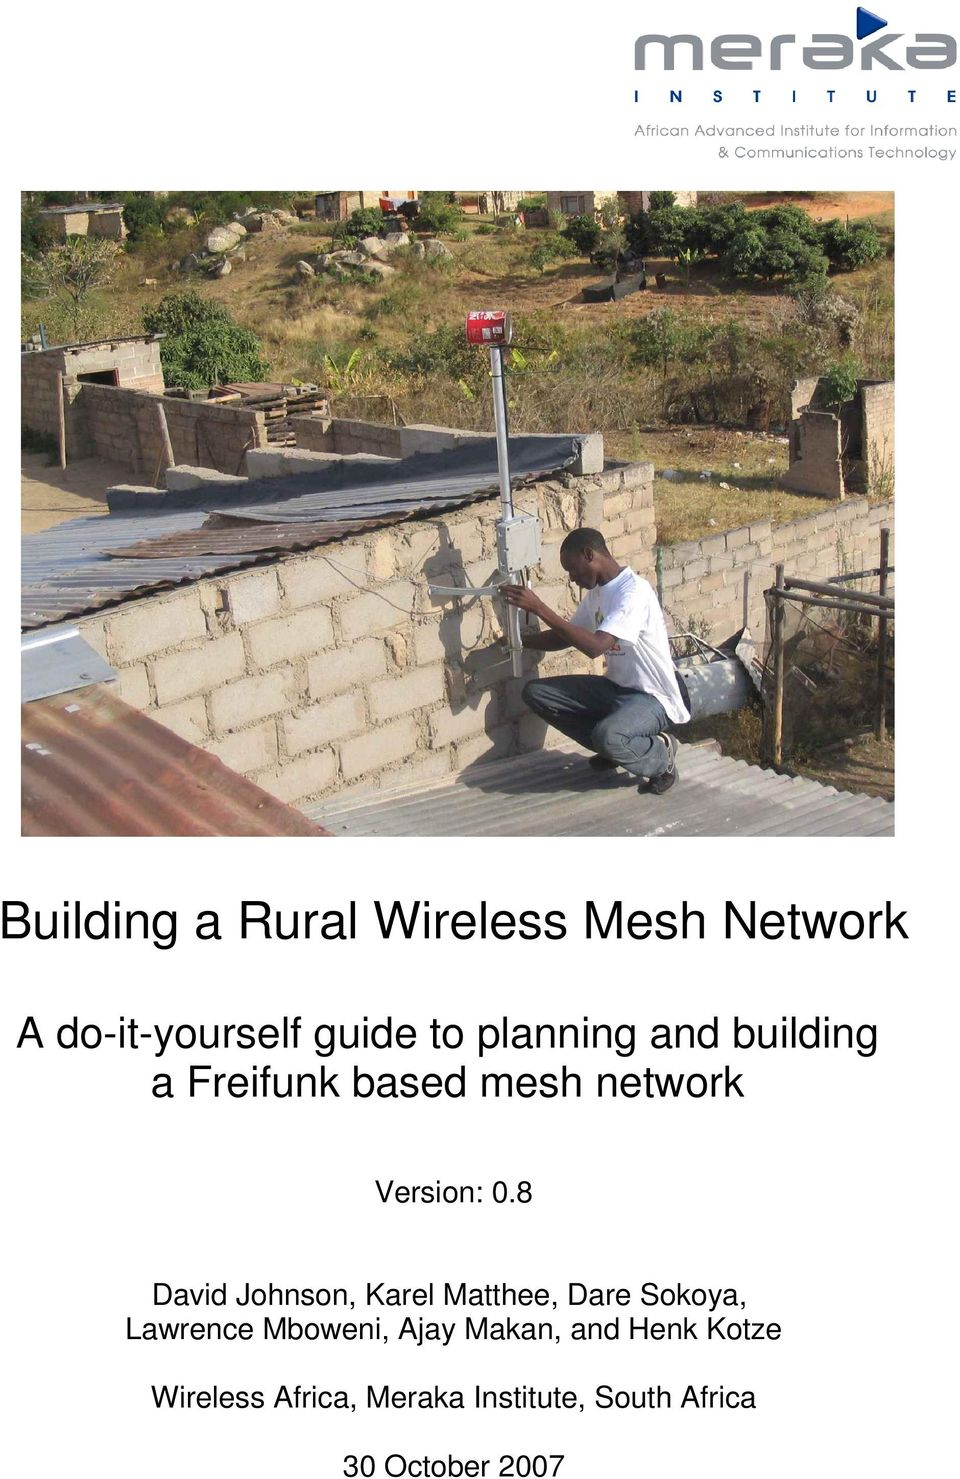 Building a Rural Wireless Mesh Network